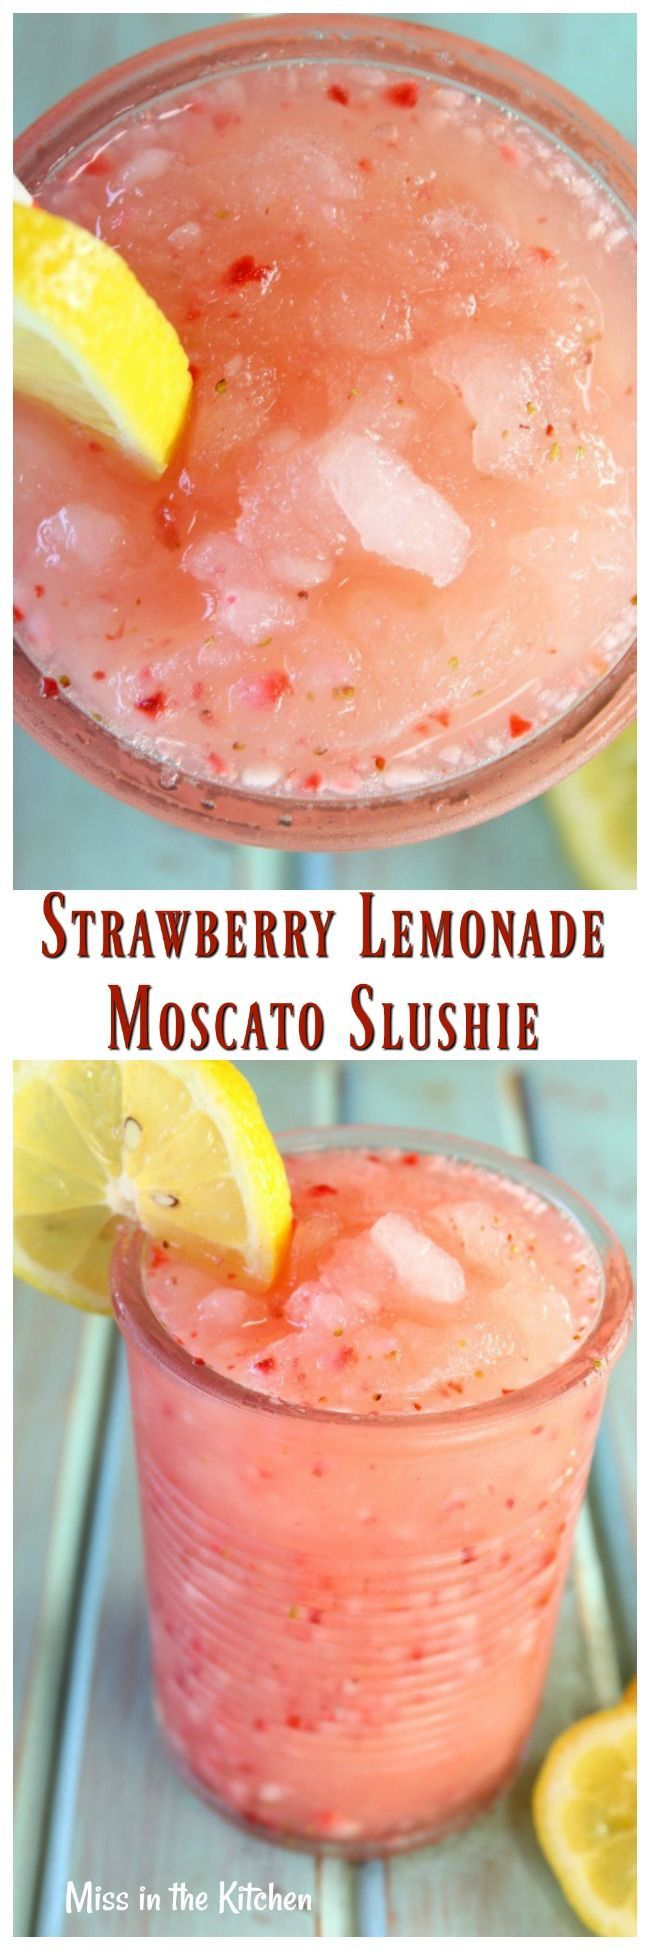 STRAWBERRY LEMONADE MOSCATO SLUSHIE is a delicious and refreshing party drink! #recipe from MissintheKitchen.com #cocktail #slushie #moscato #wine